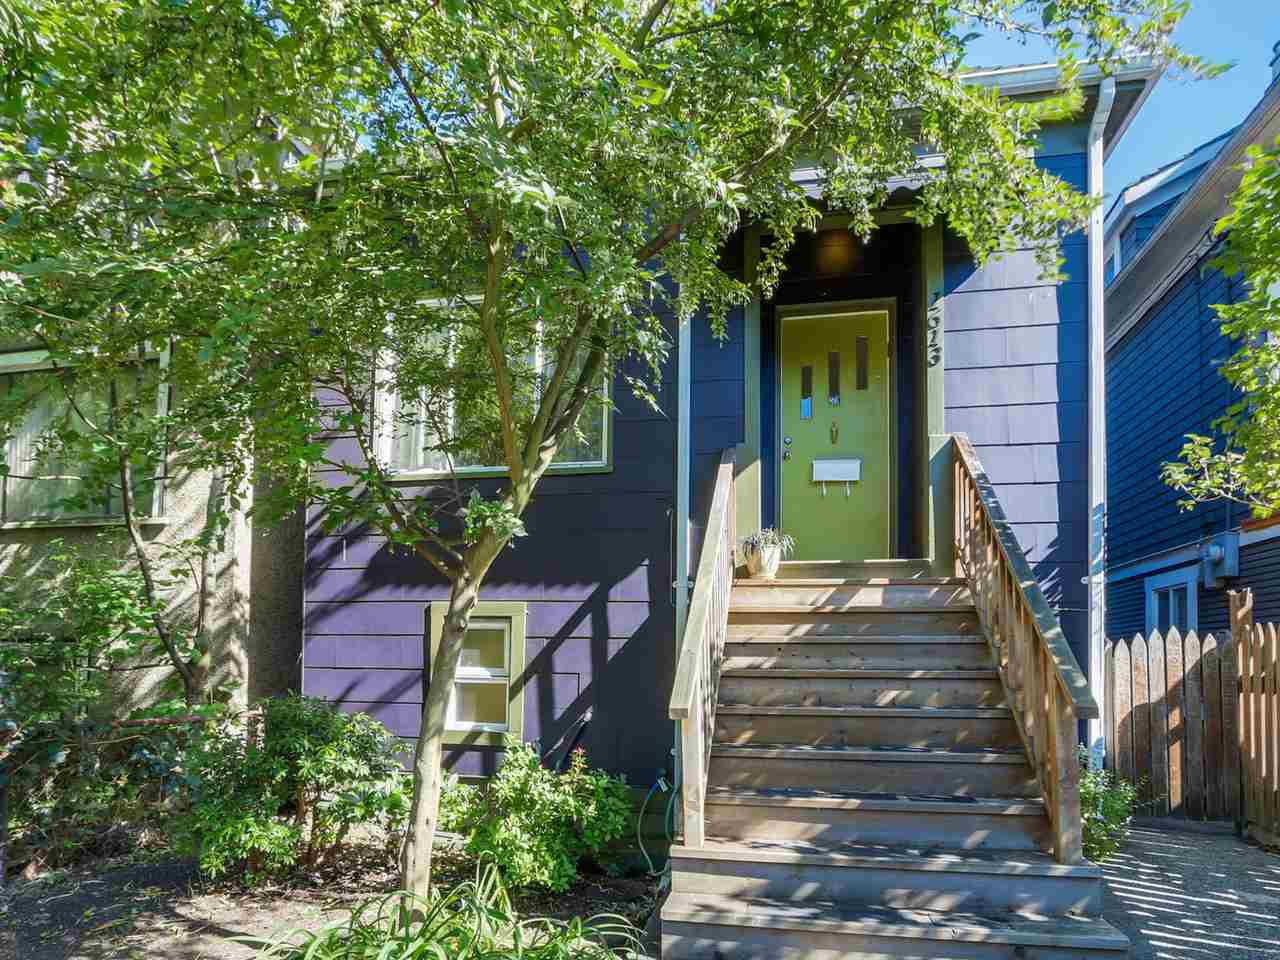 Main Photo: 1613 E 4TH AVENUE in Vancouver: Grandview VE House for sale (Vancouver East)  : MLS®# R2096953